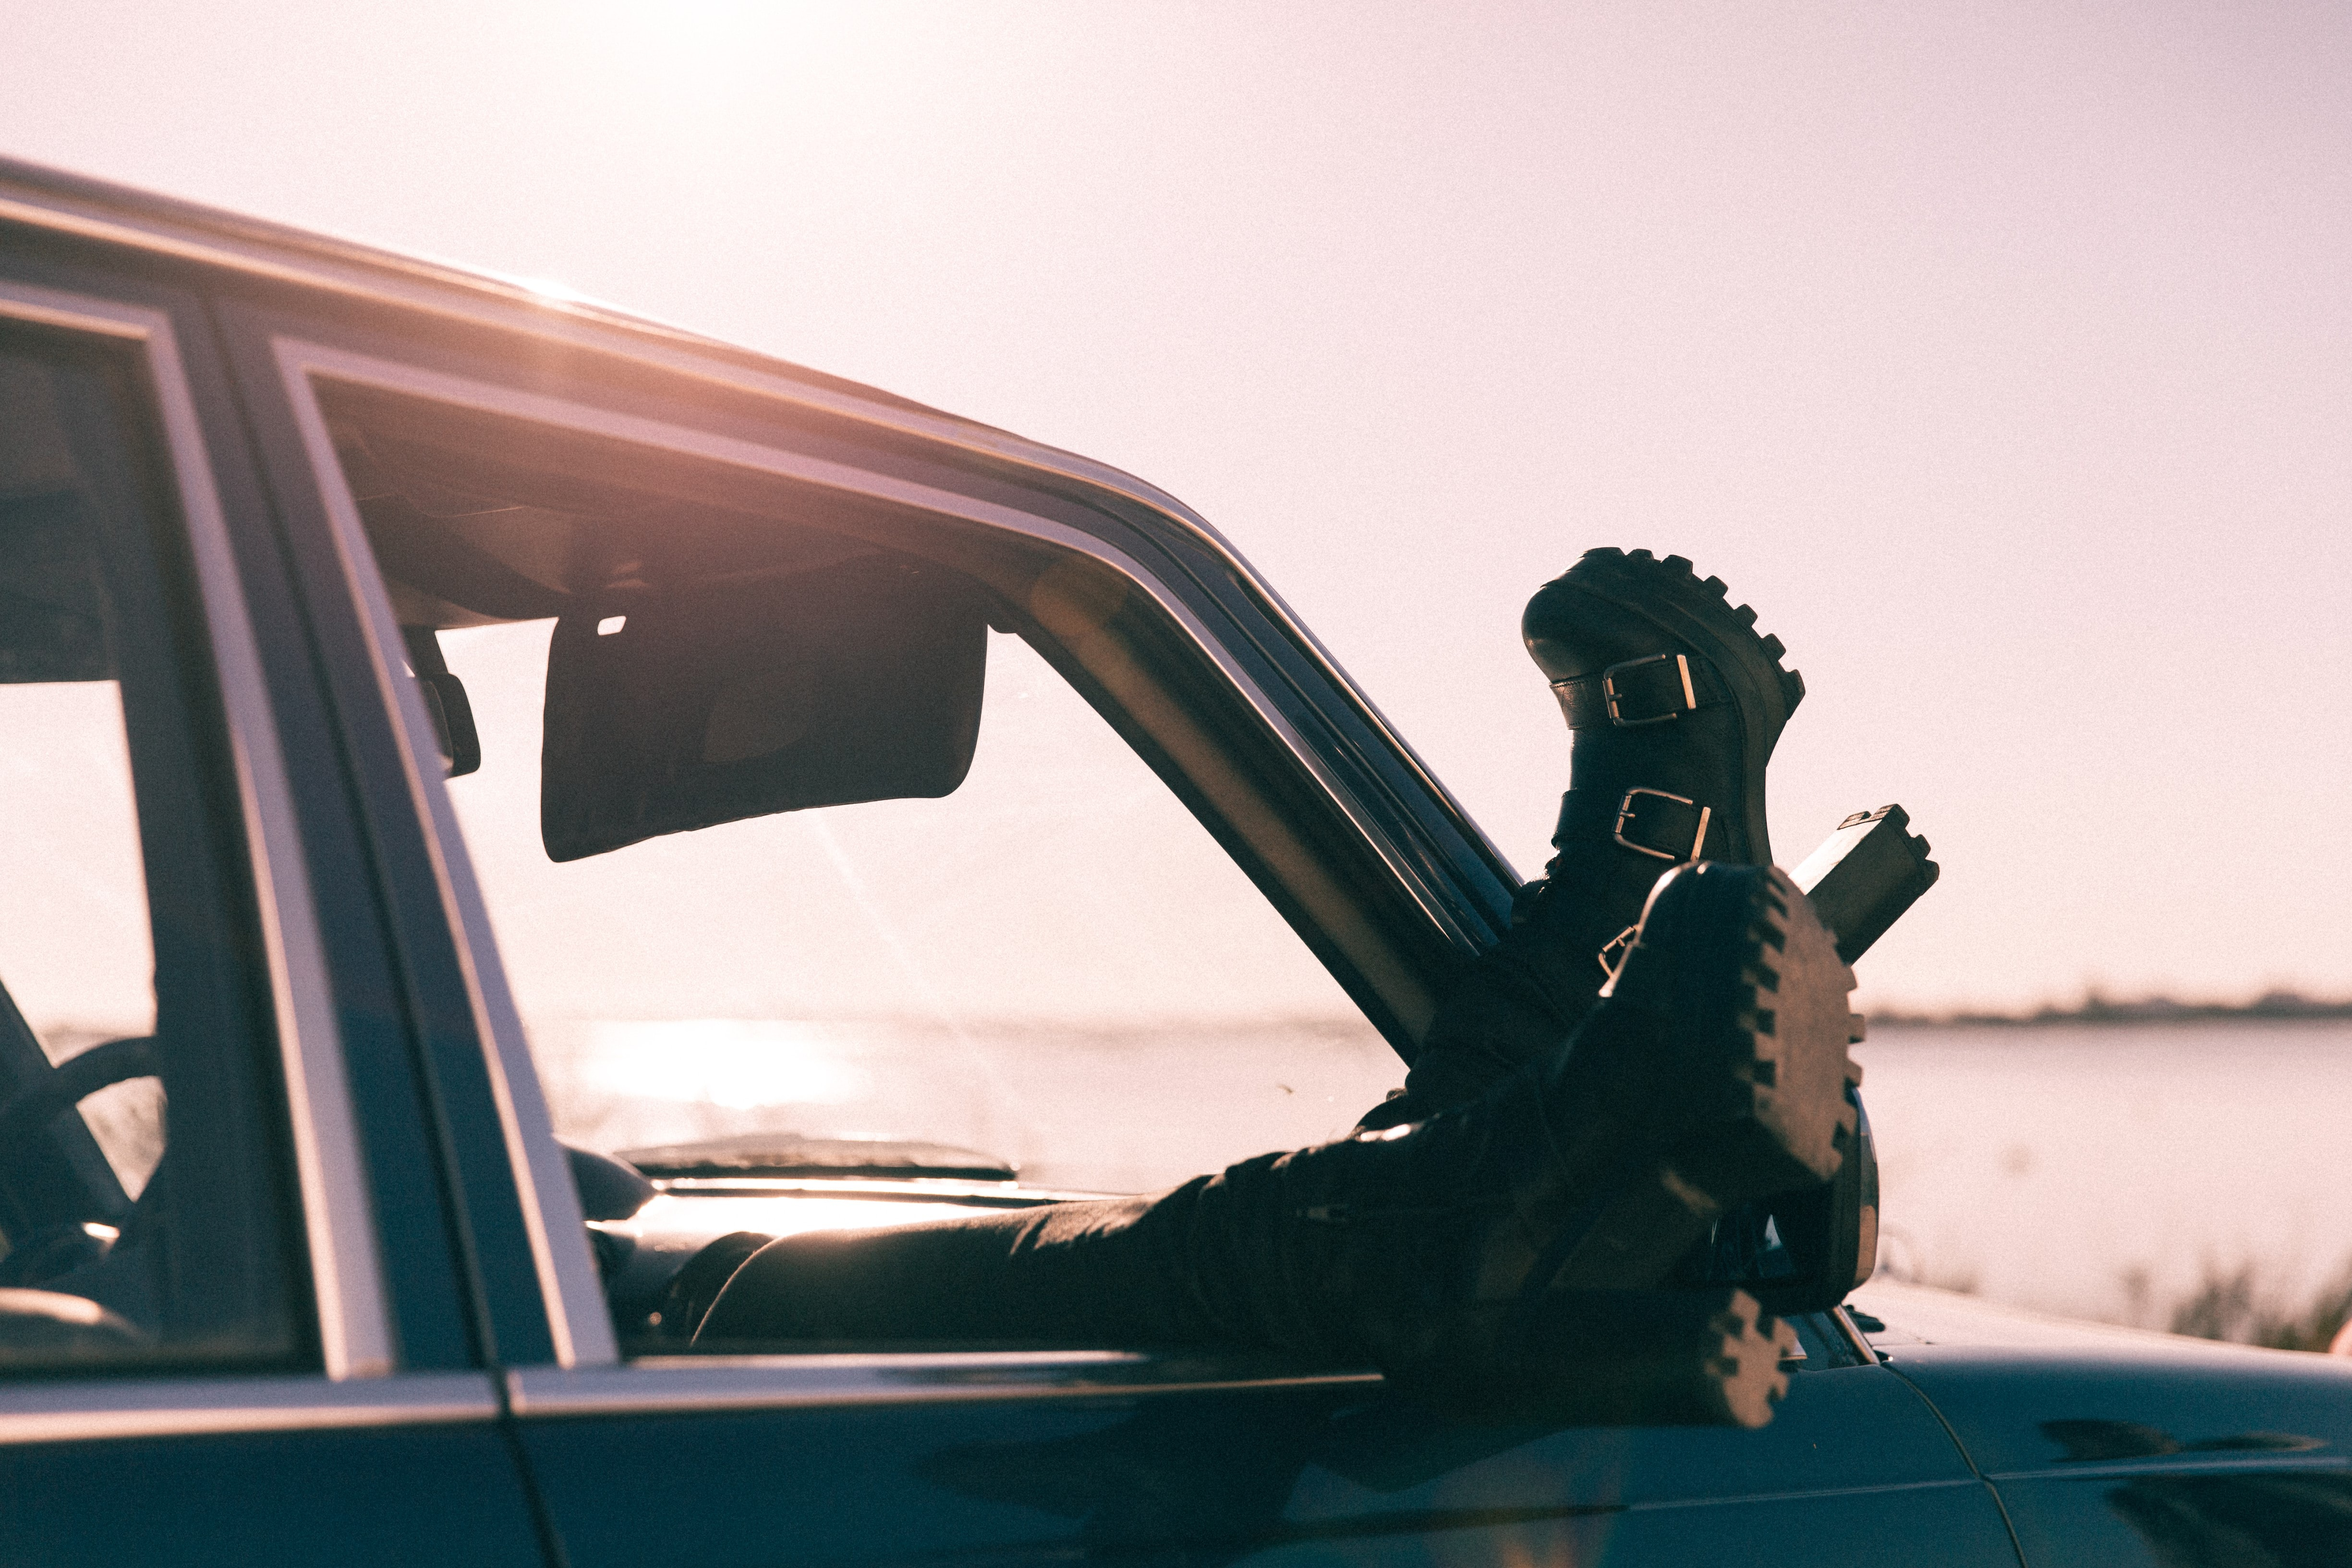 Person rests boots out of a car window in the sunshine